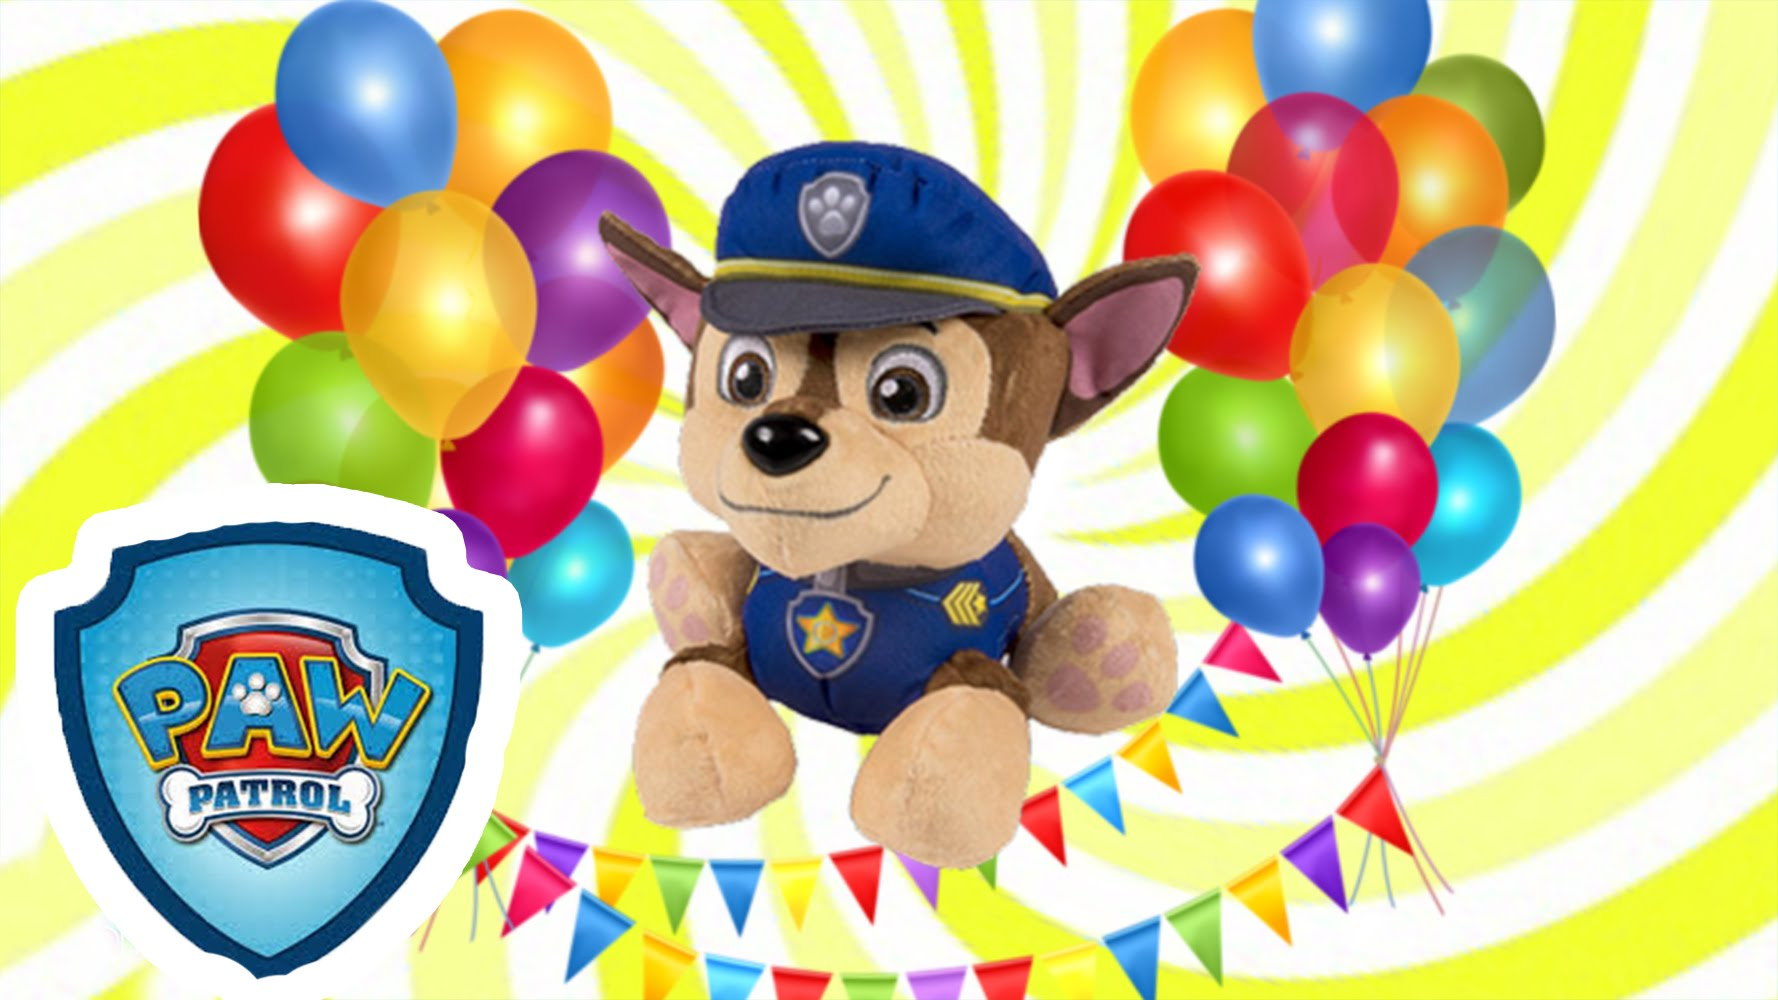 Paw patrol police dog clipart jpg free stock Happy Birthday Paw Patrol and Friends Song - DANCING AND SINGING ... jpg free stock